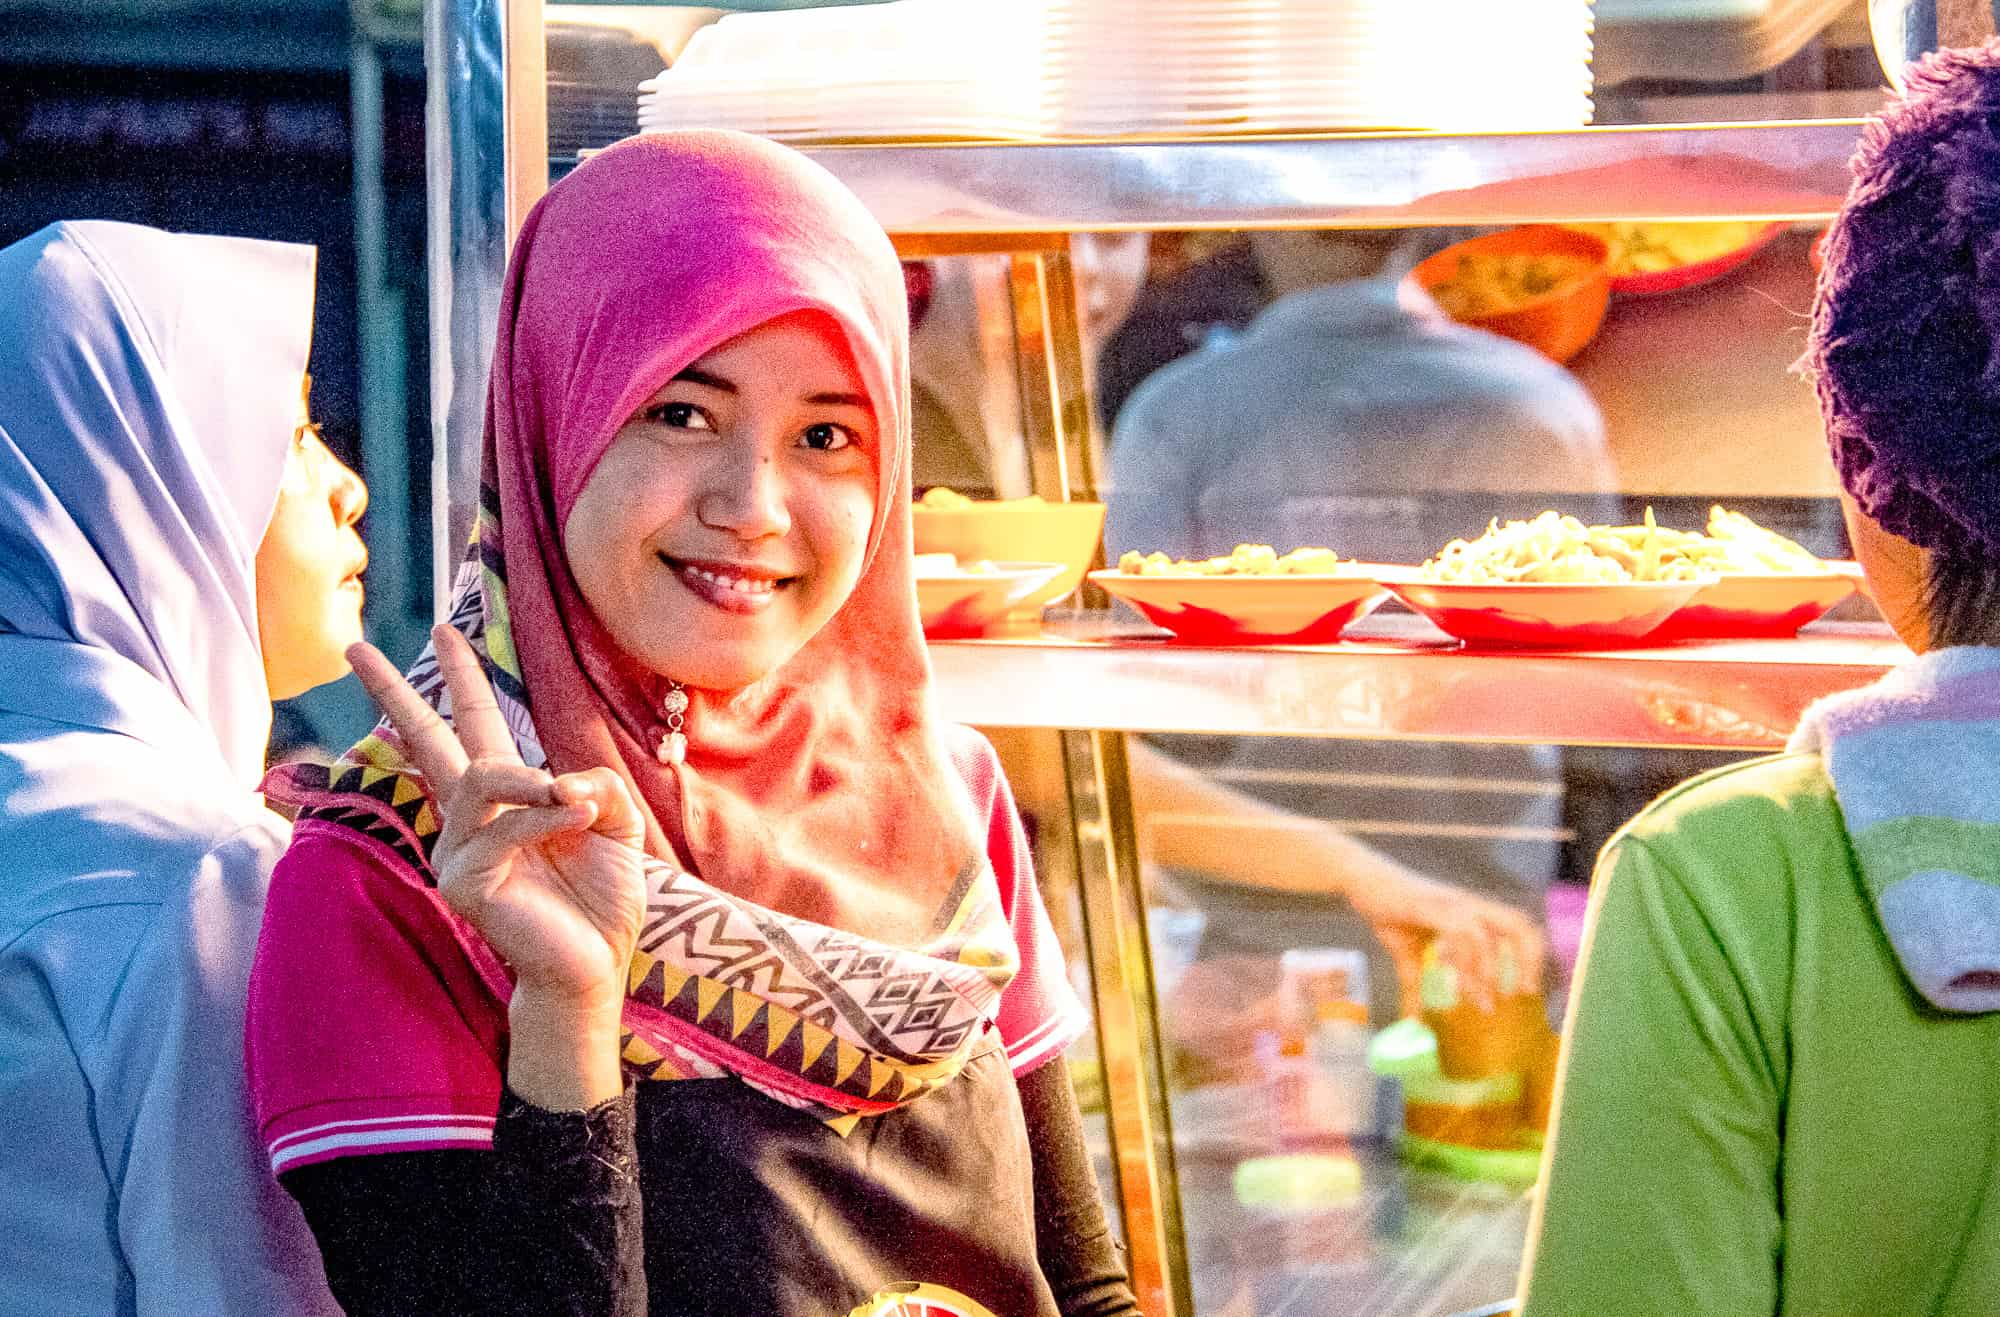 Food and drink quiz questions - woman in Borneo - round the world food questions - street food